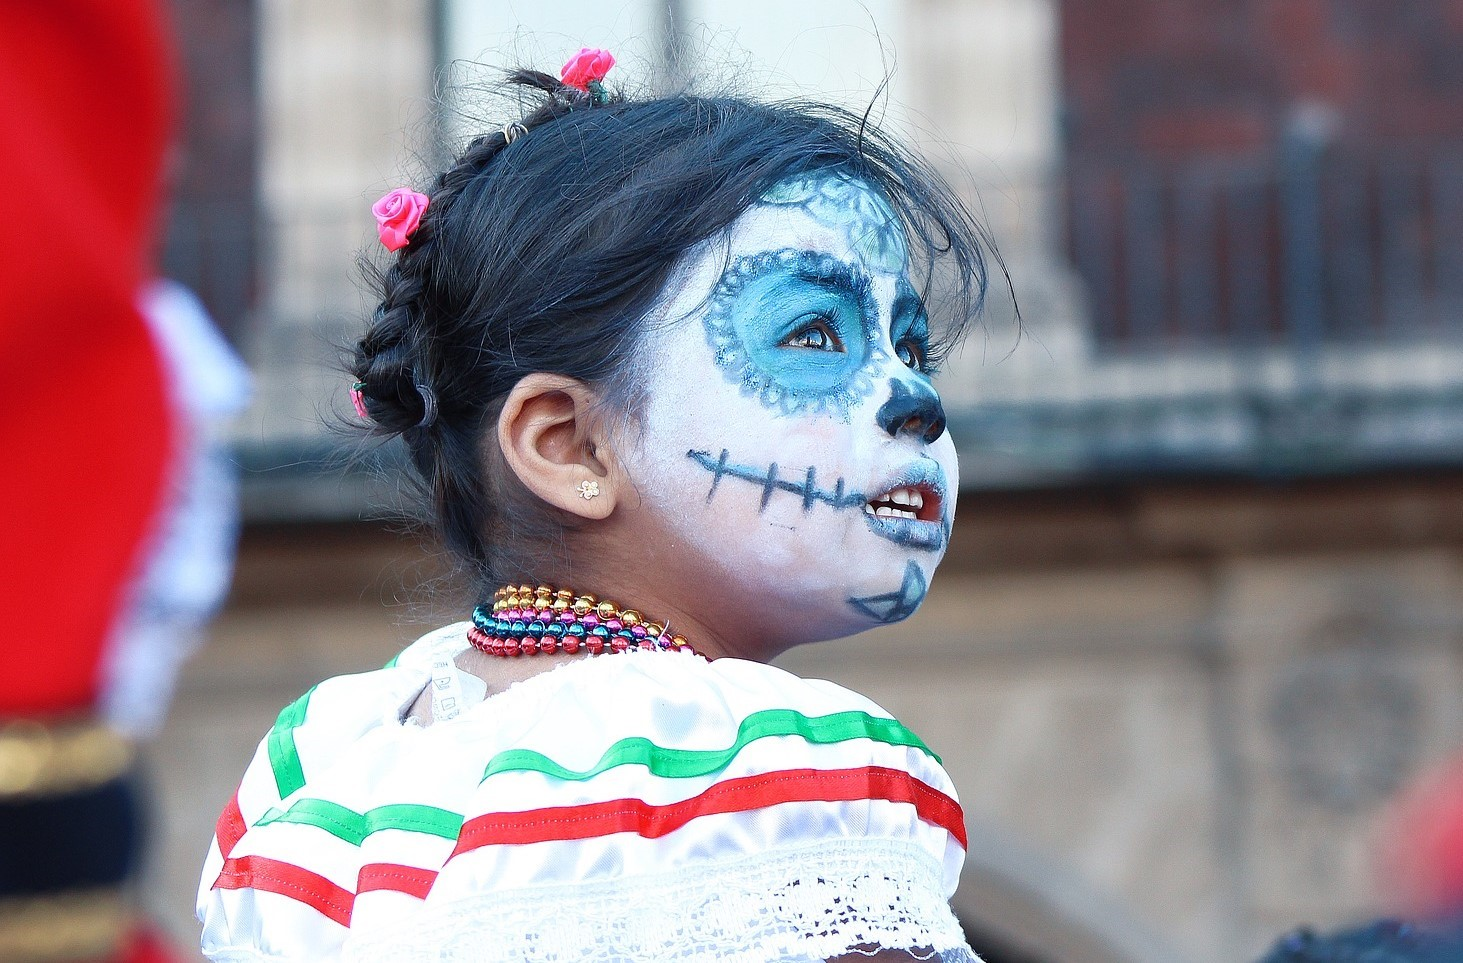 Young Mexican girl celebrating Day of the Dead